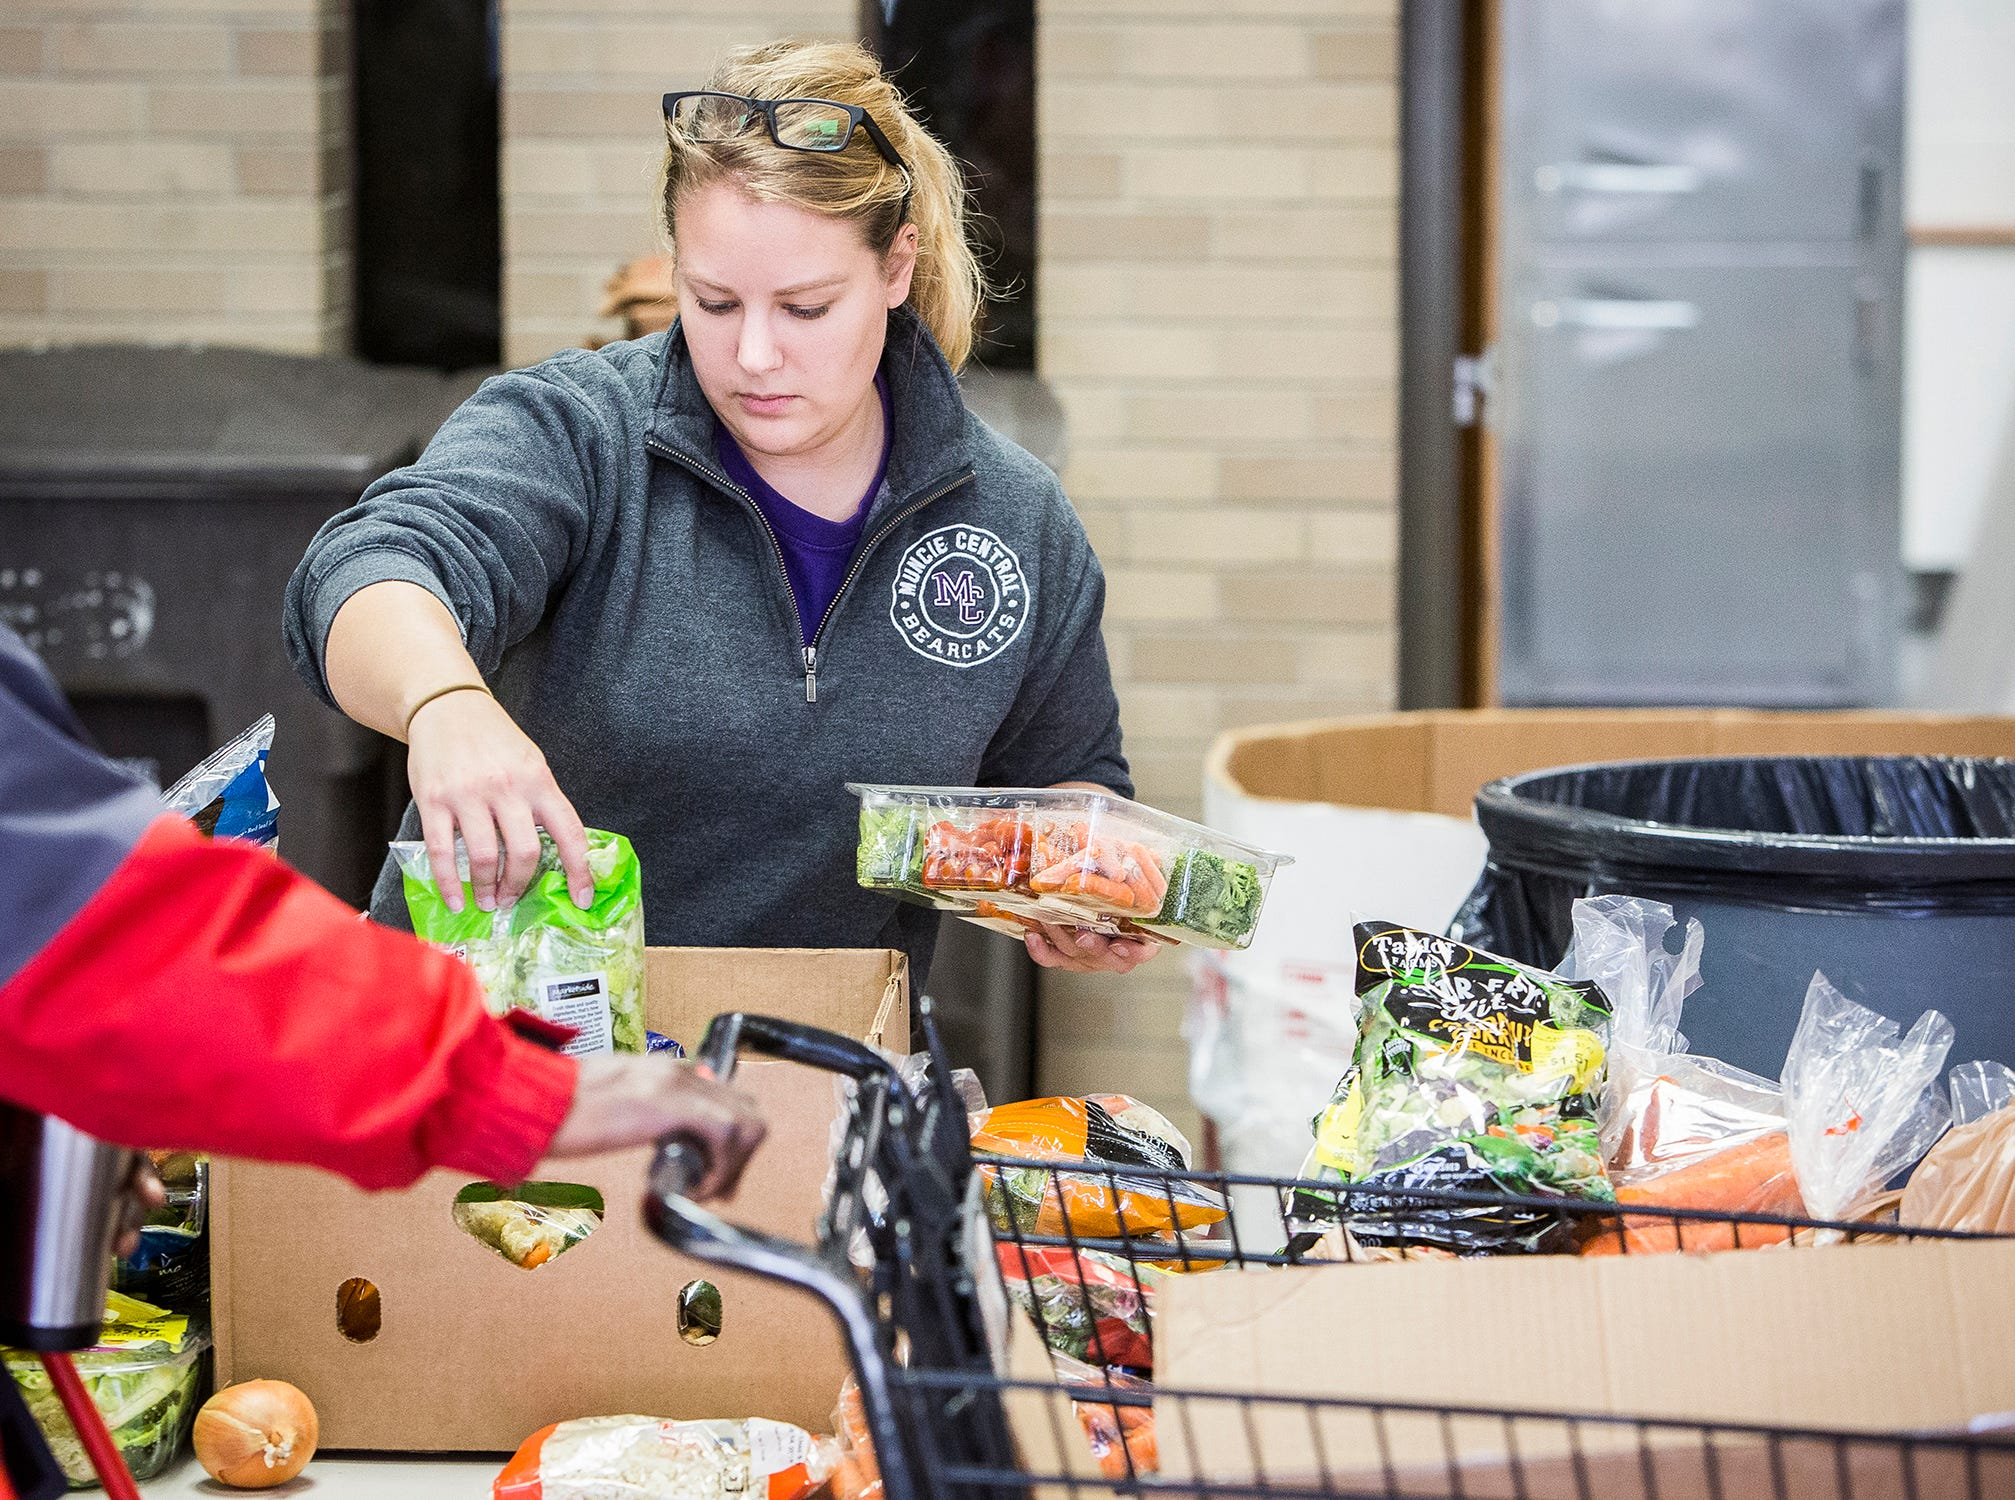 Volunteers work with recipients during Second Harvest's school food pantry program after school at Central.